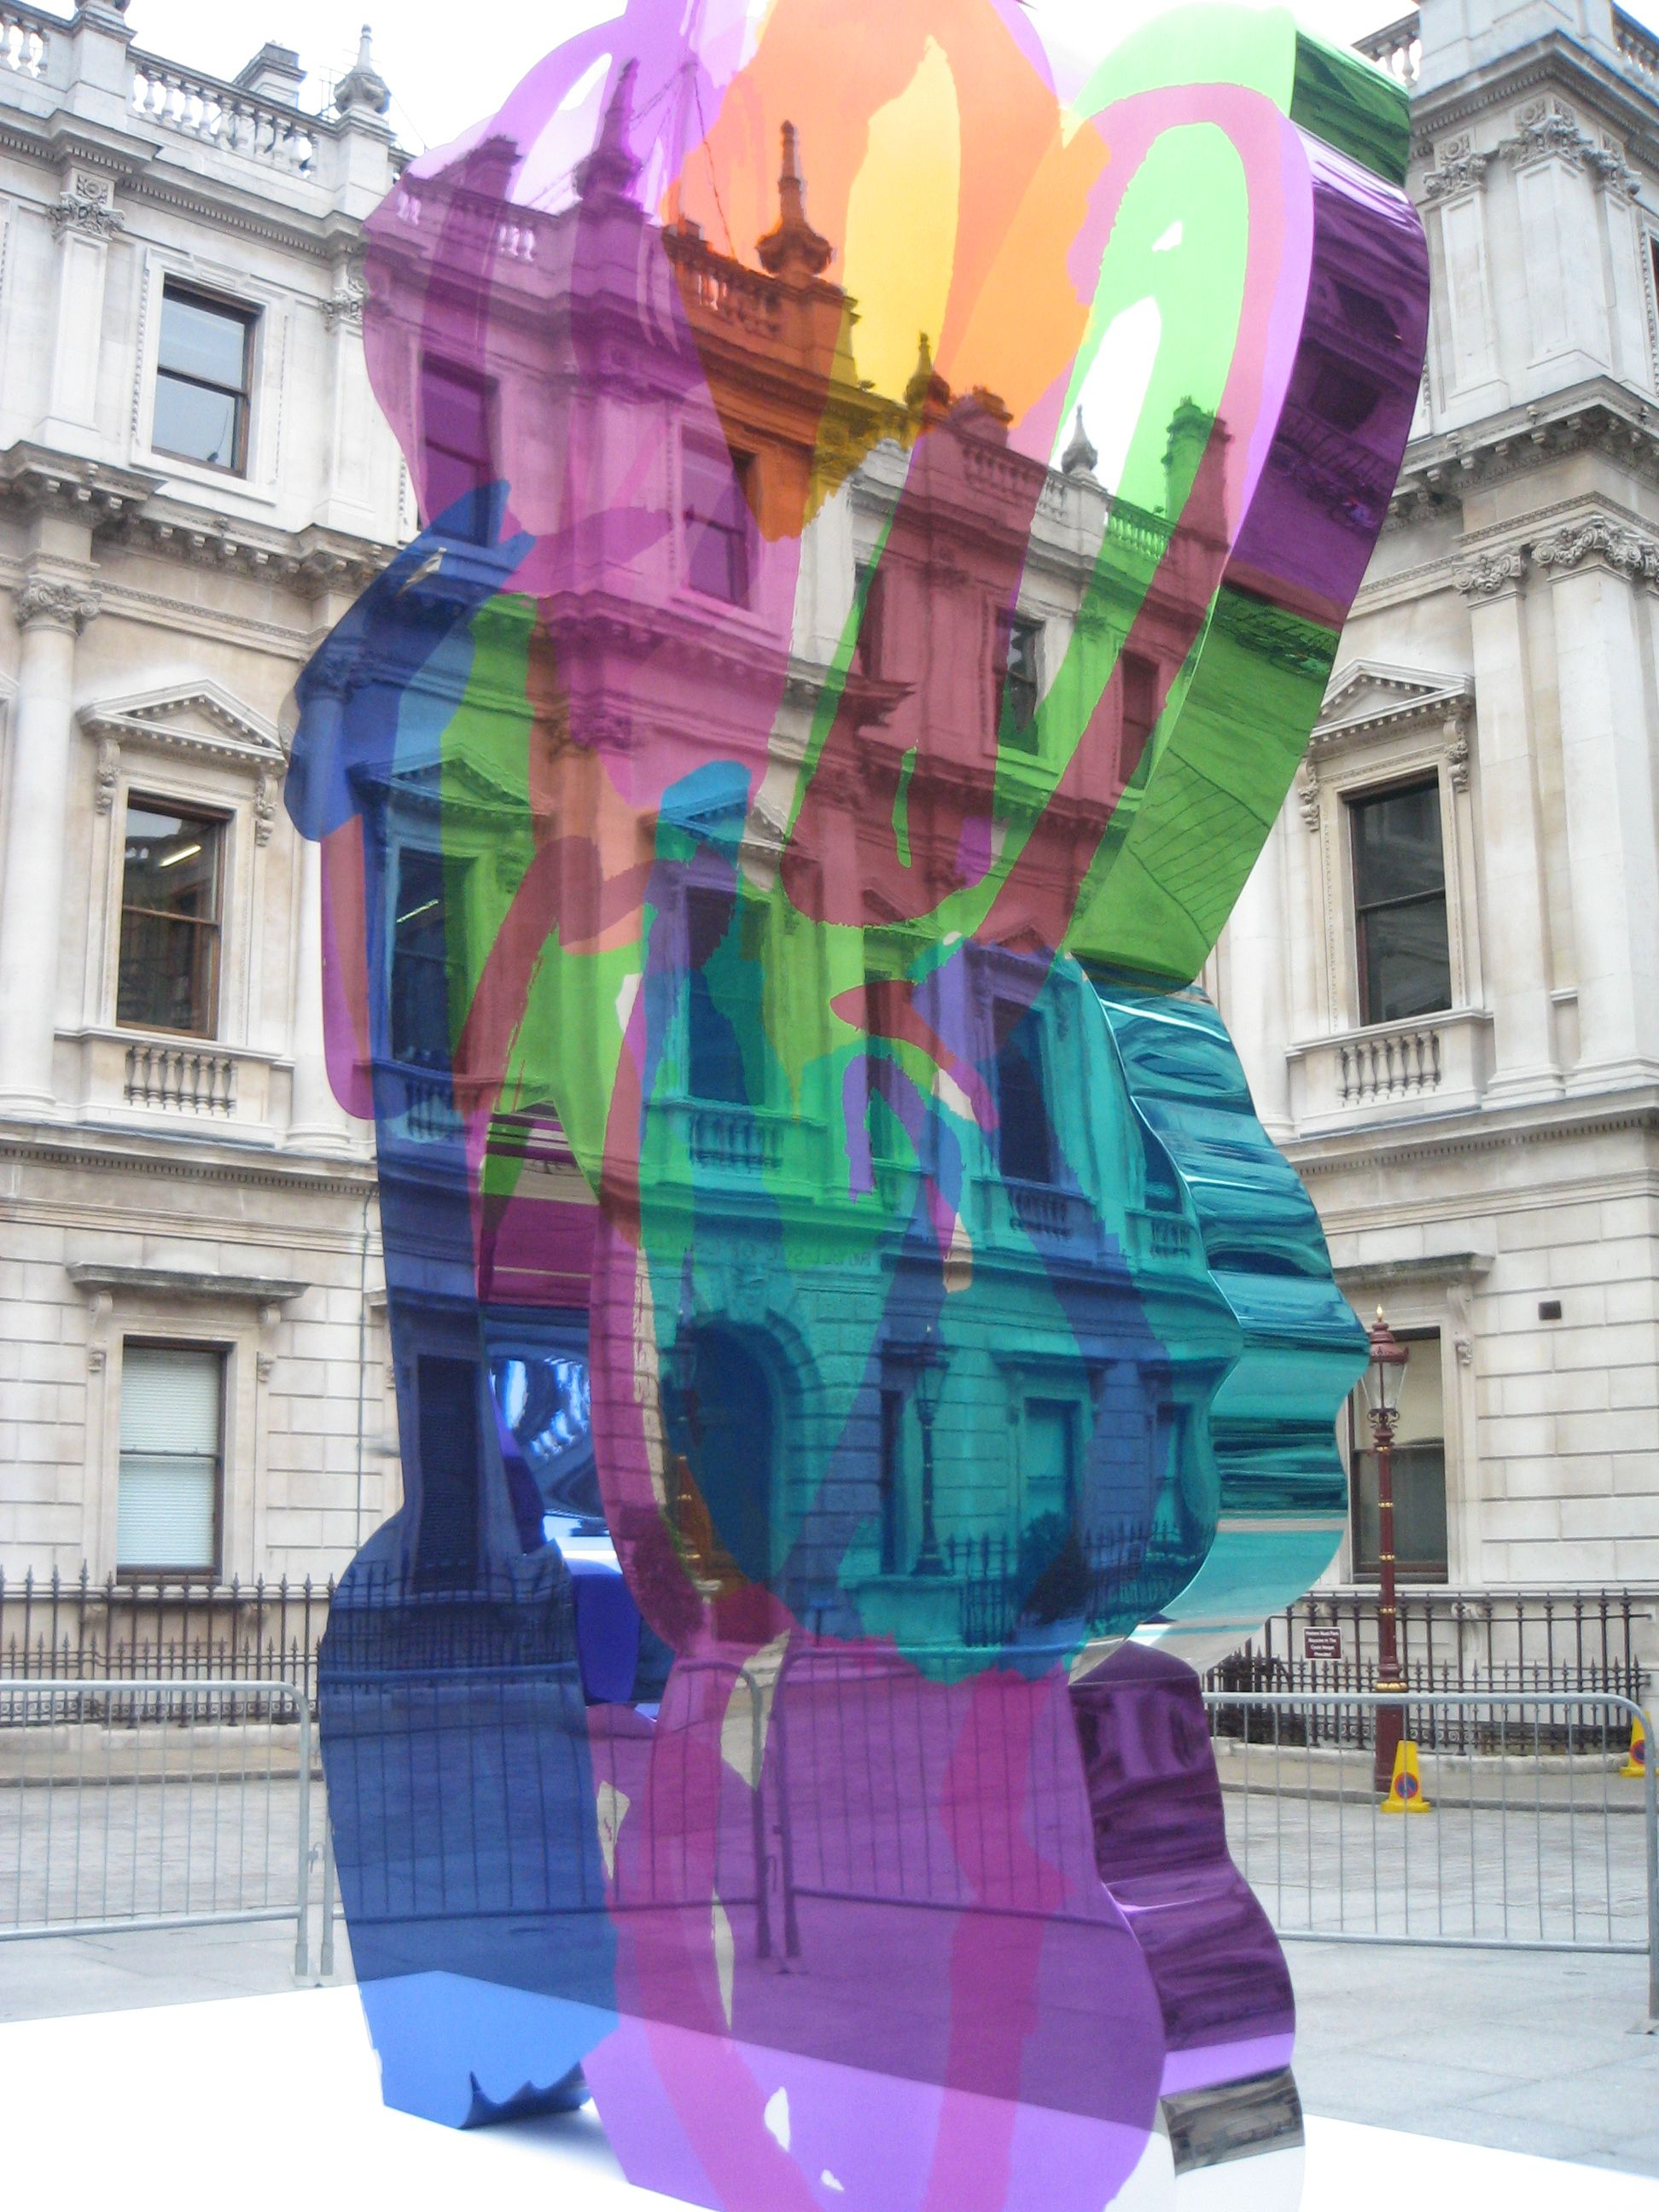 Jeff Koons Colouring Book in the Royal Academy of Arts courtyard ...